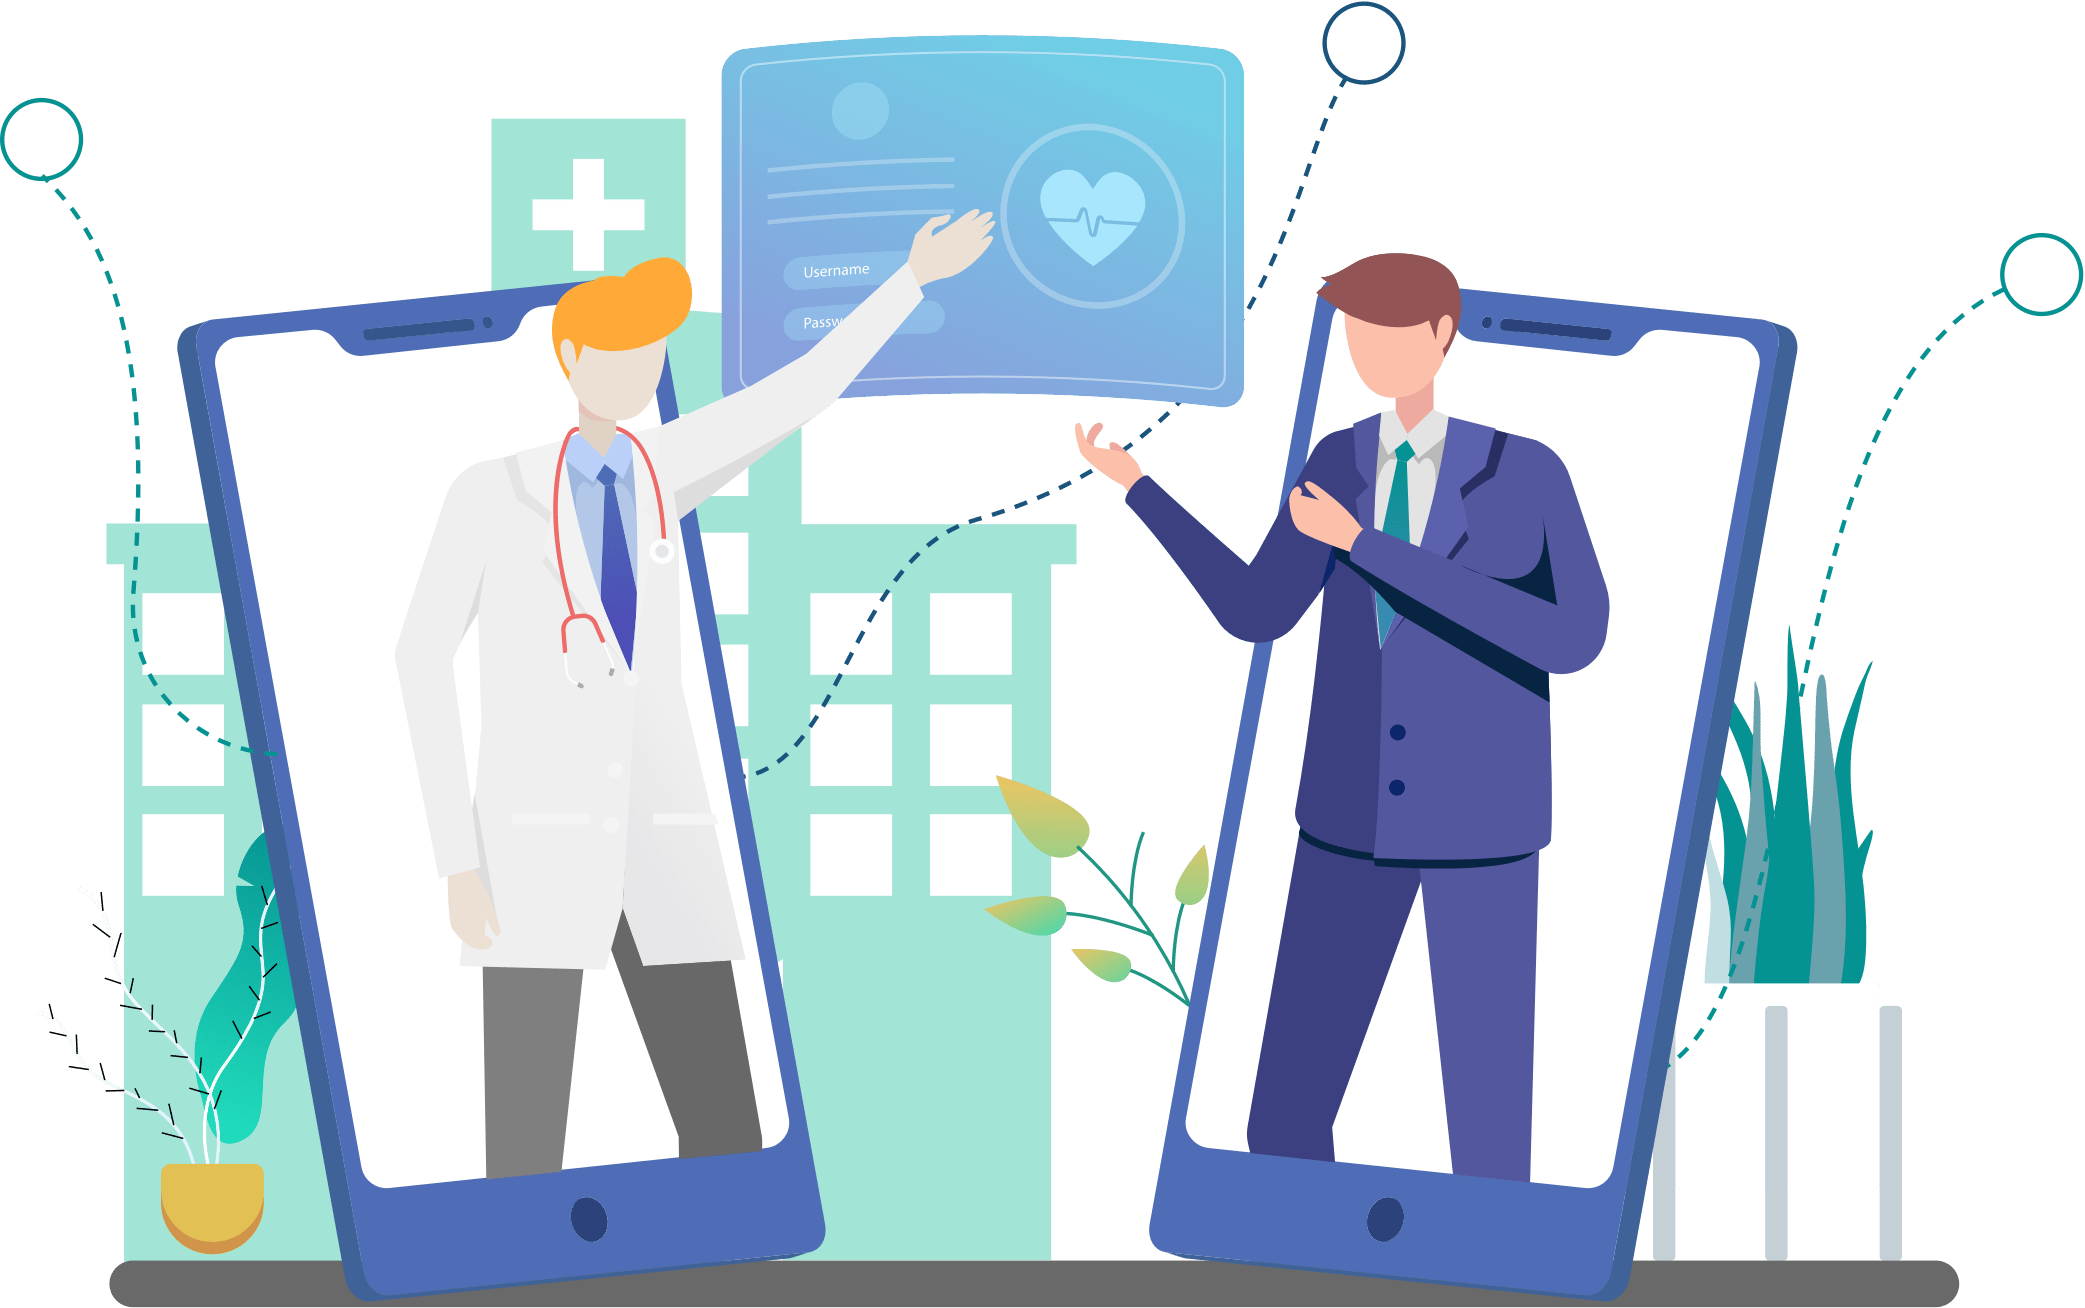 Illustration: A doctor and a sales person